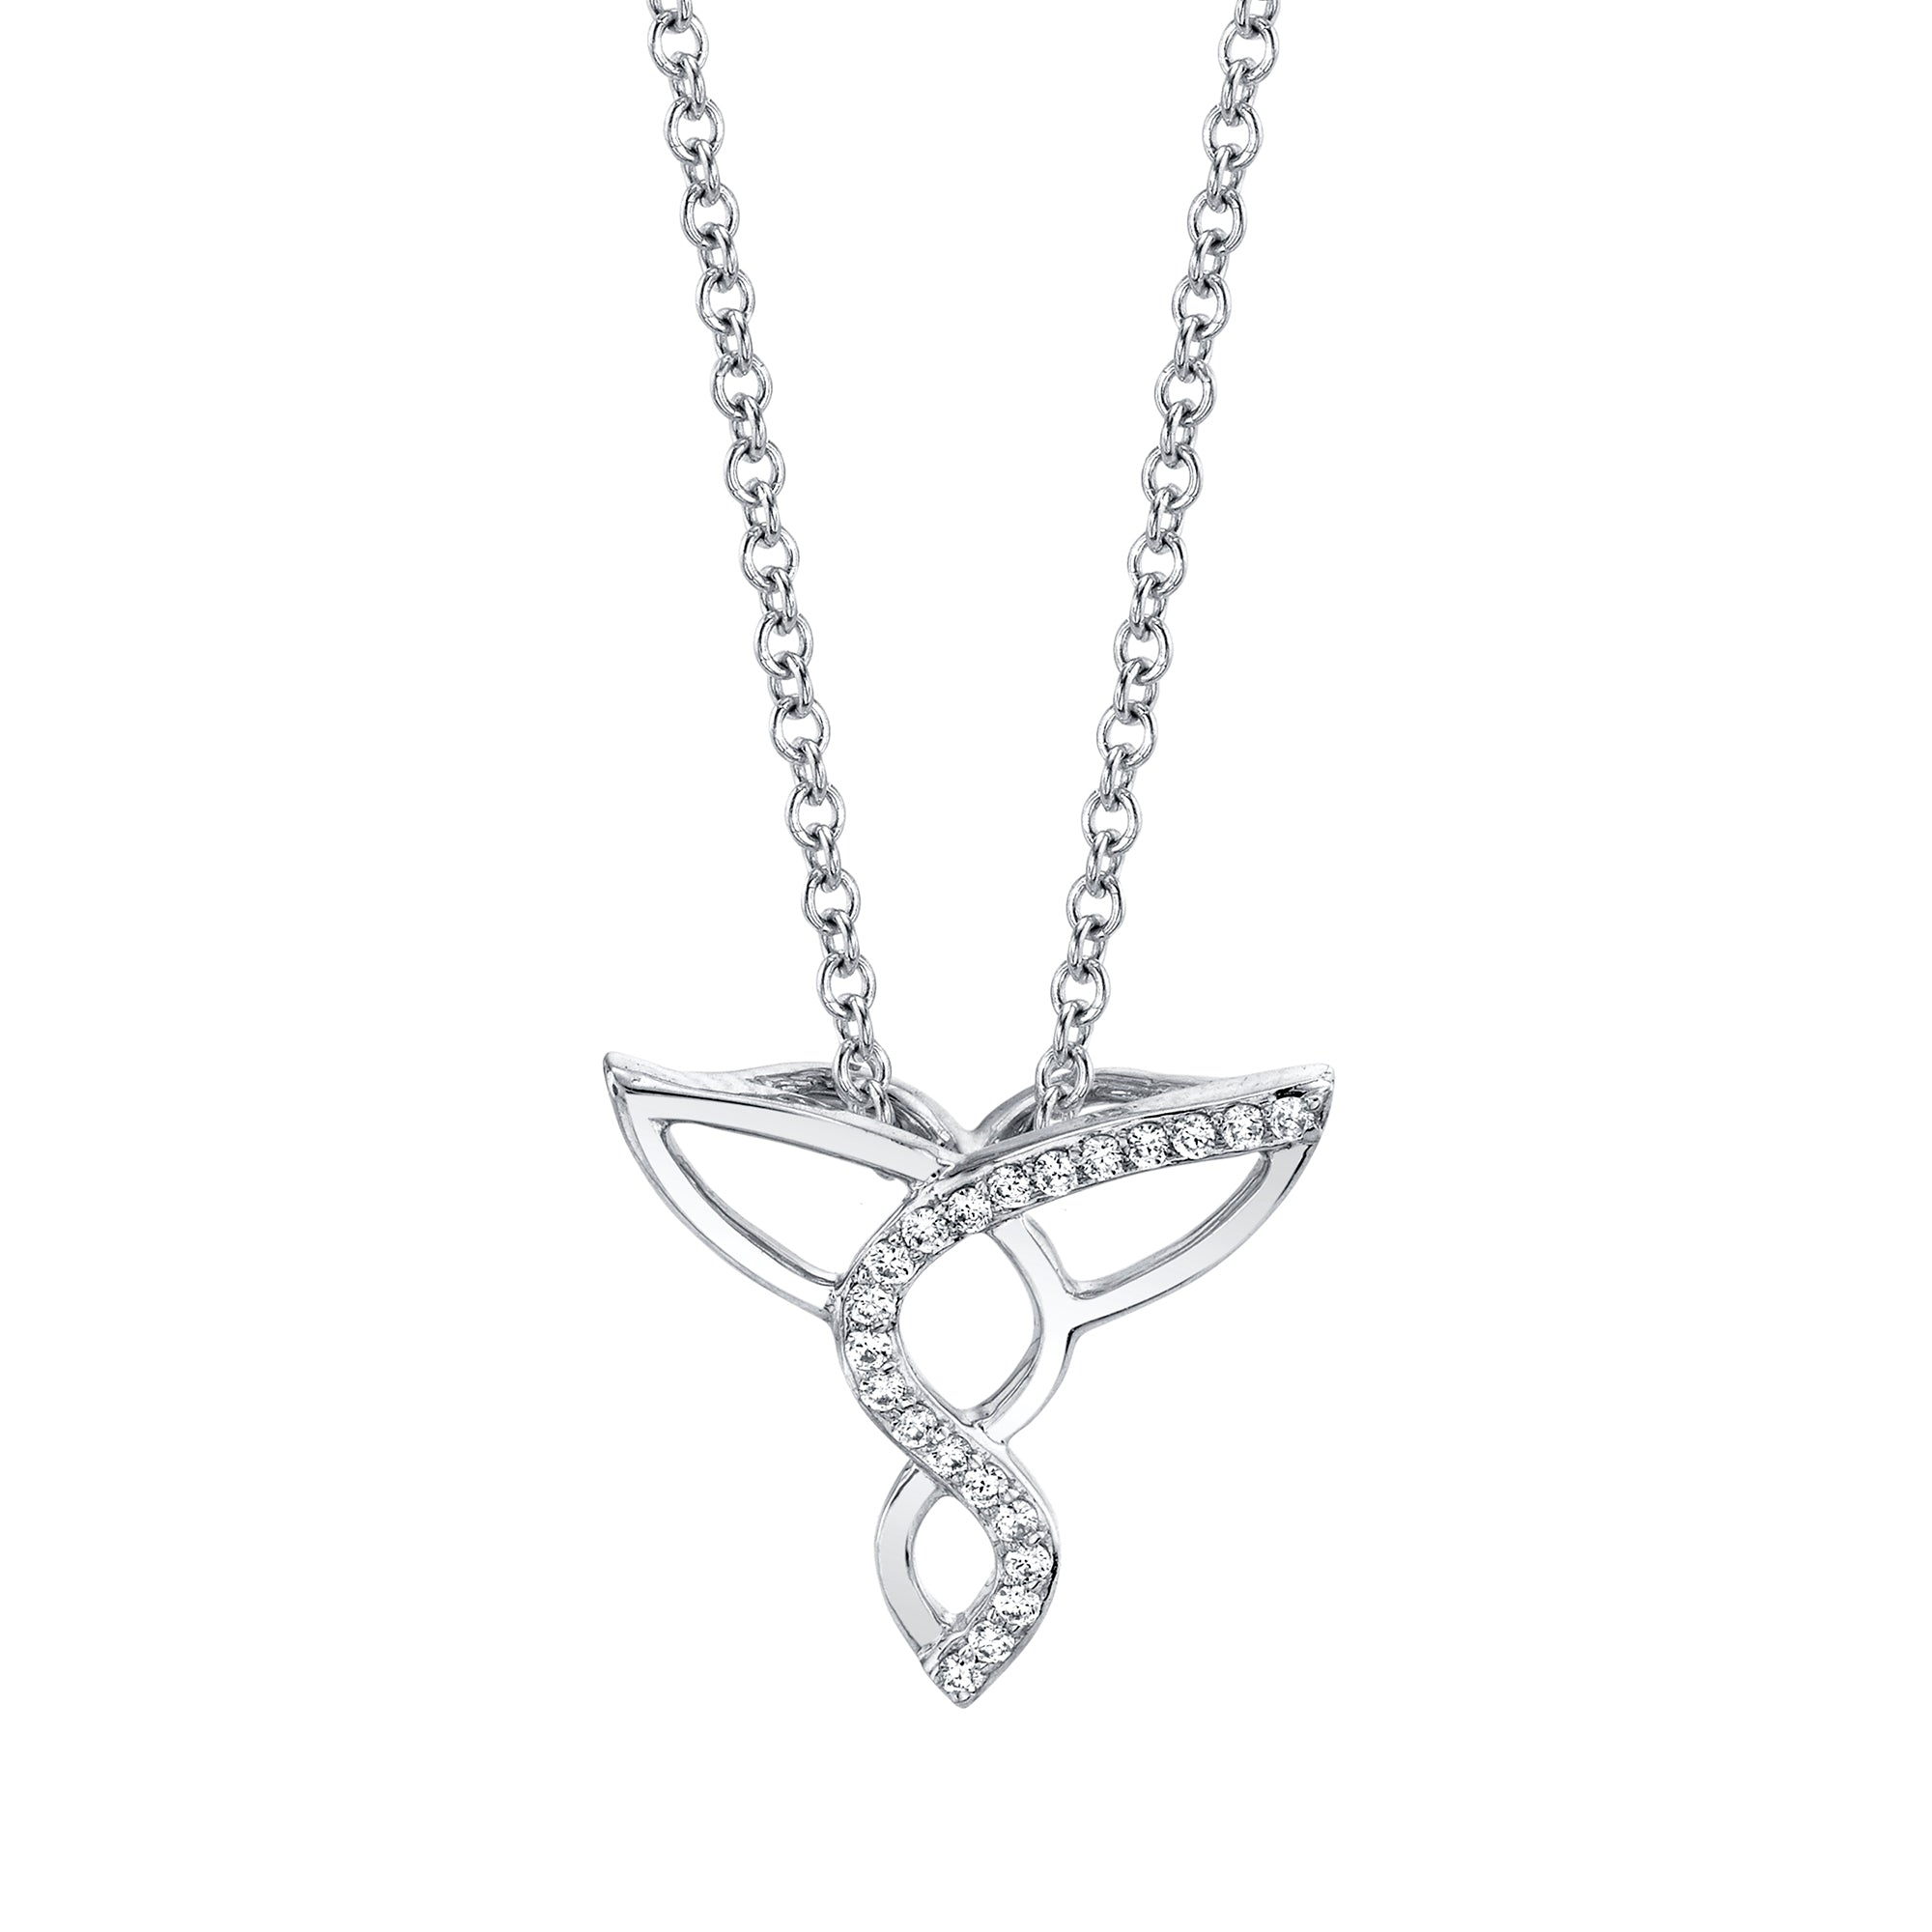 Cascading Diamond Necklace